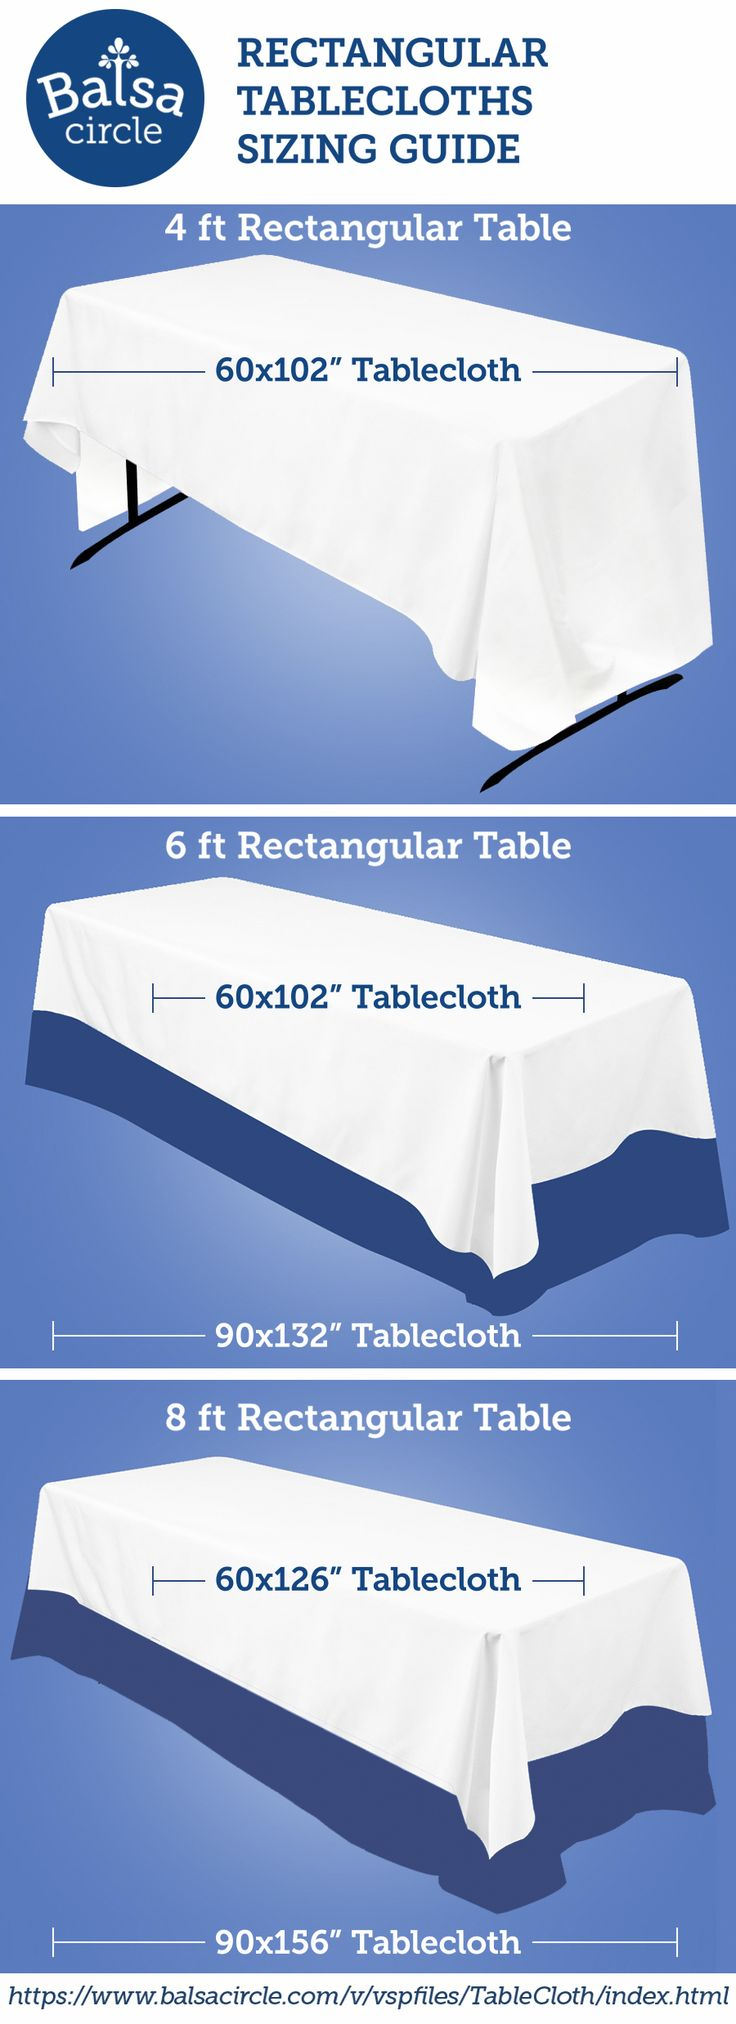 Find the right tablecloths for your banquet tables : https://www.balsacircle.com/v/vspfiles/TableCloth/index.html